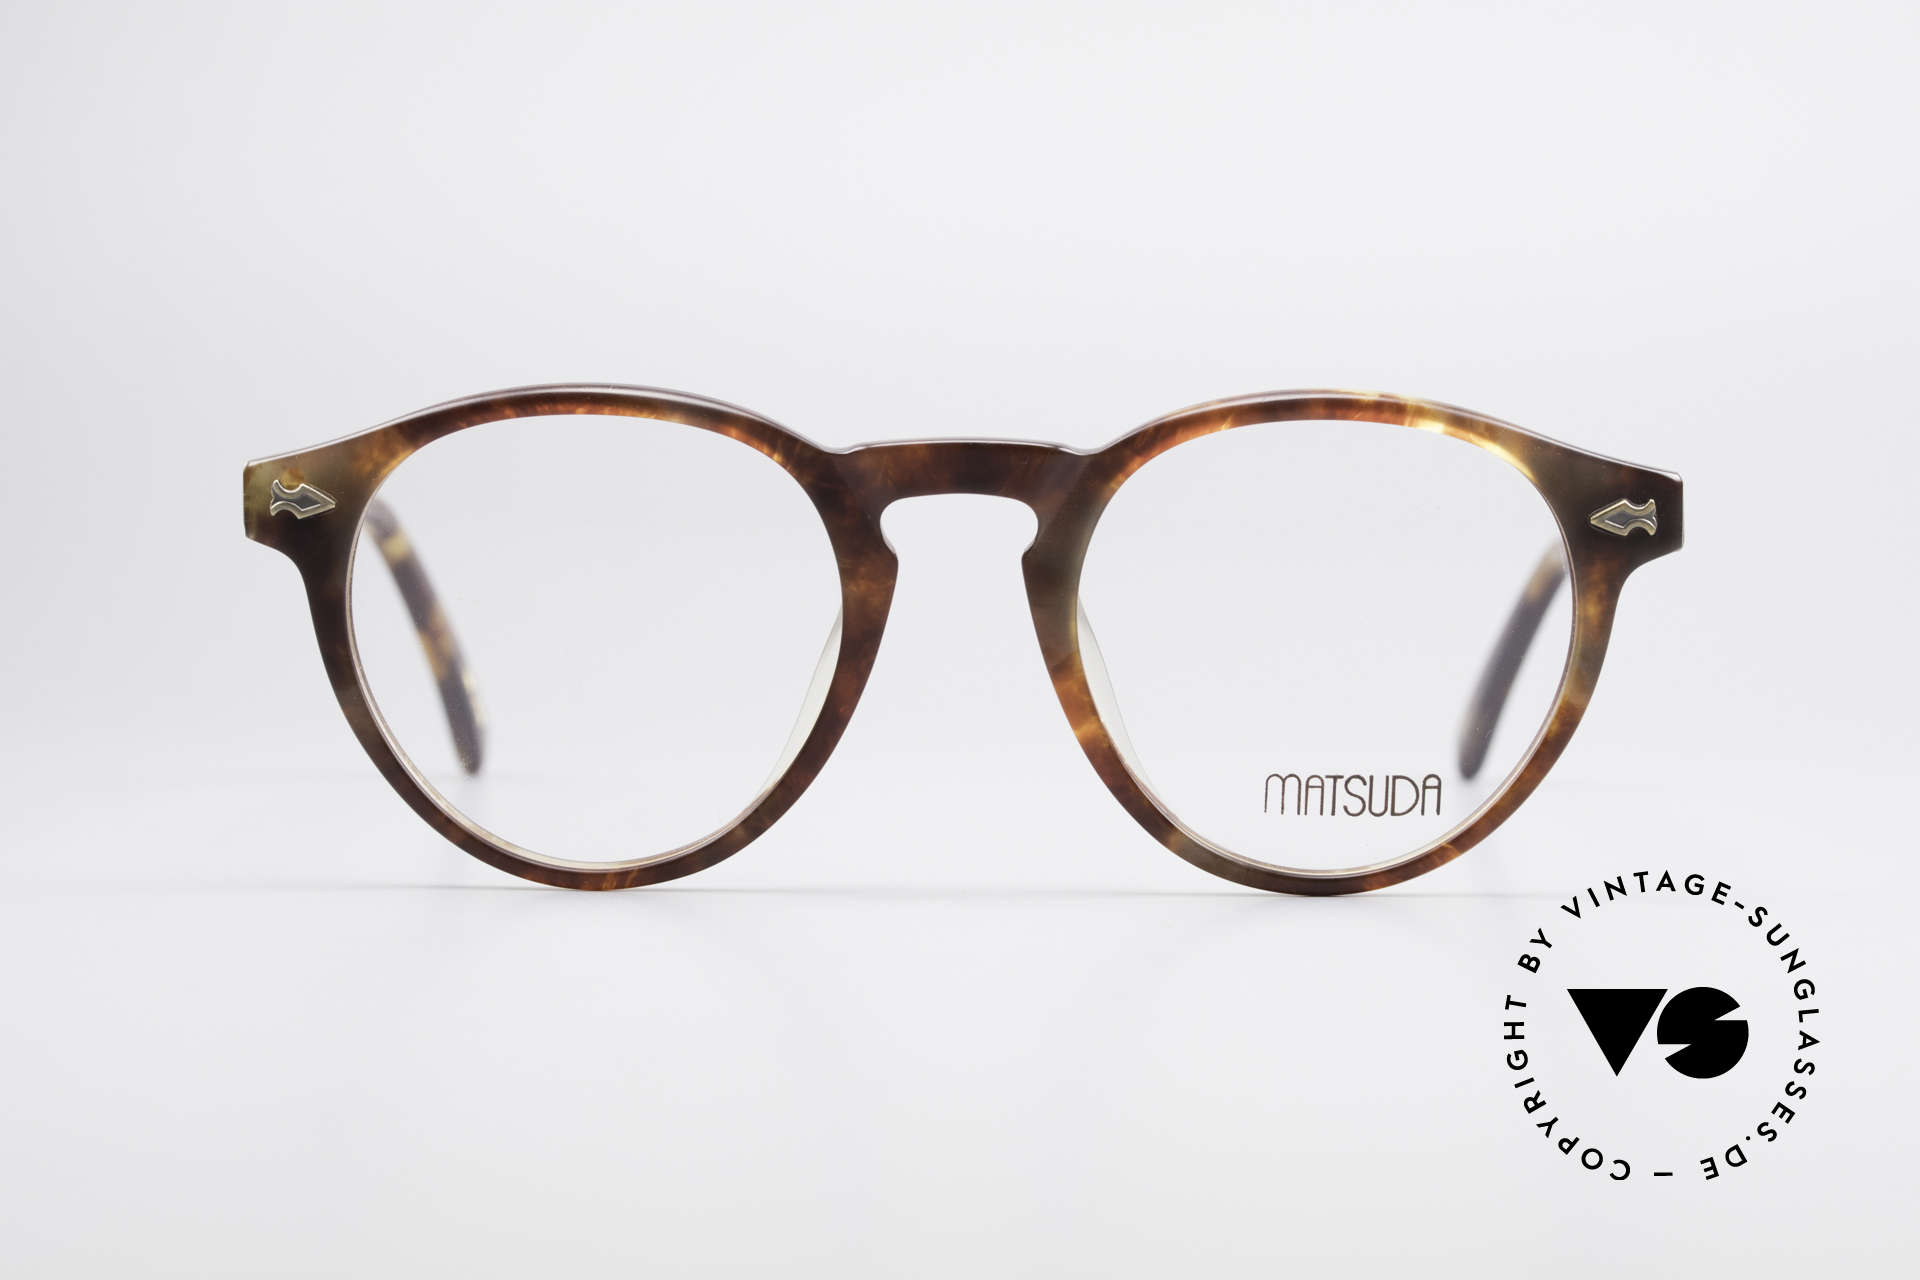 Matsuda 2303 Panto Vintage Eyeglasses, outstanding quality by the Japanese Design manufactory, Made for Men and Women